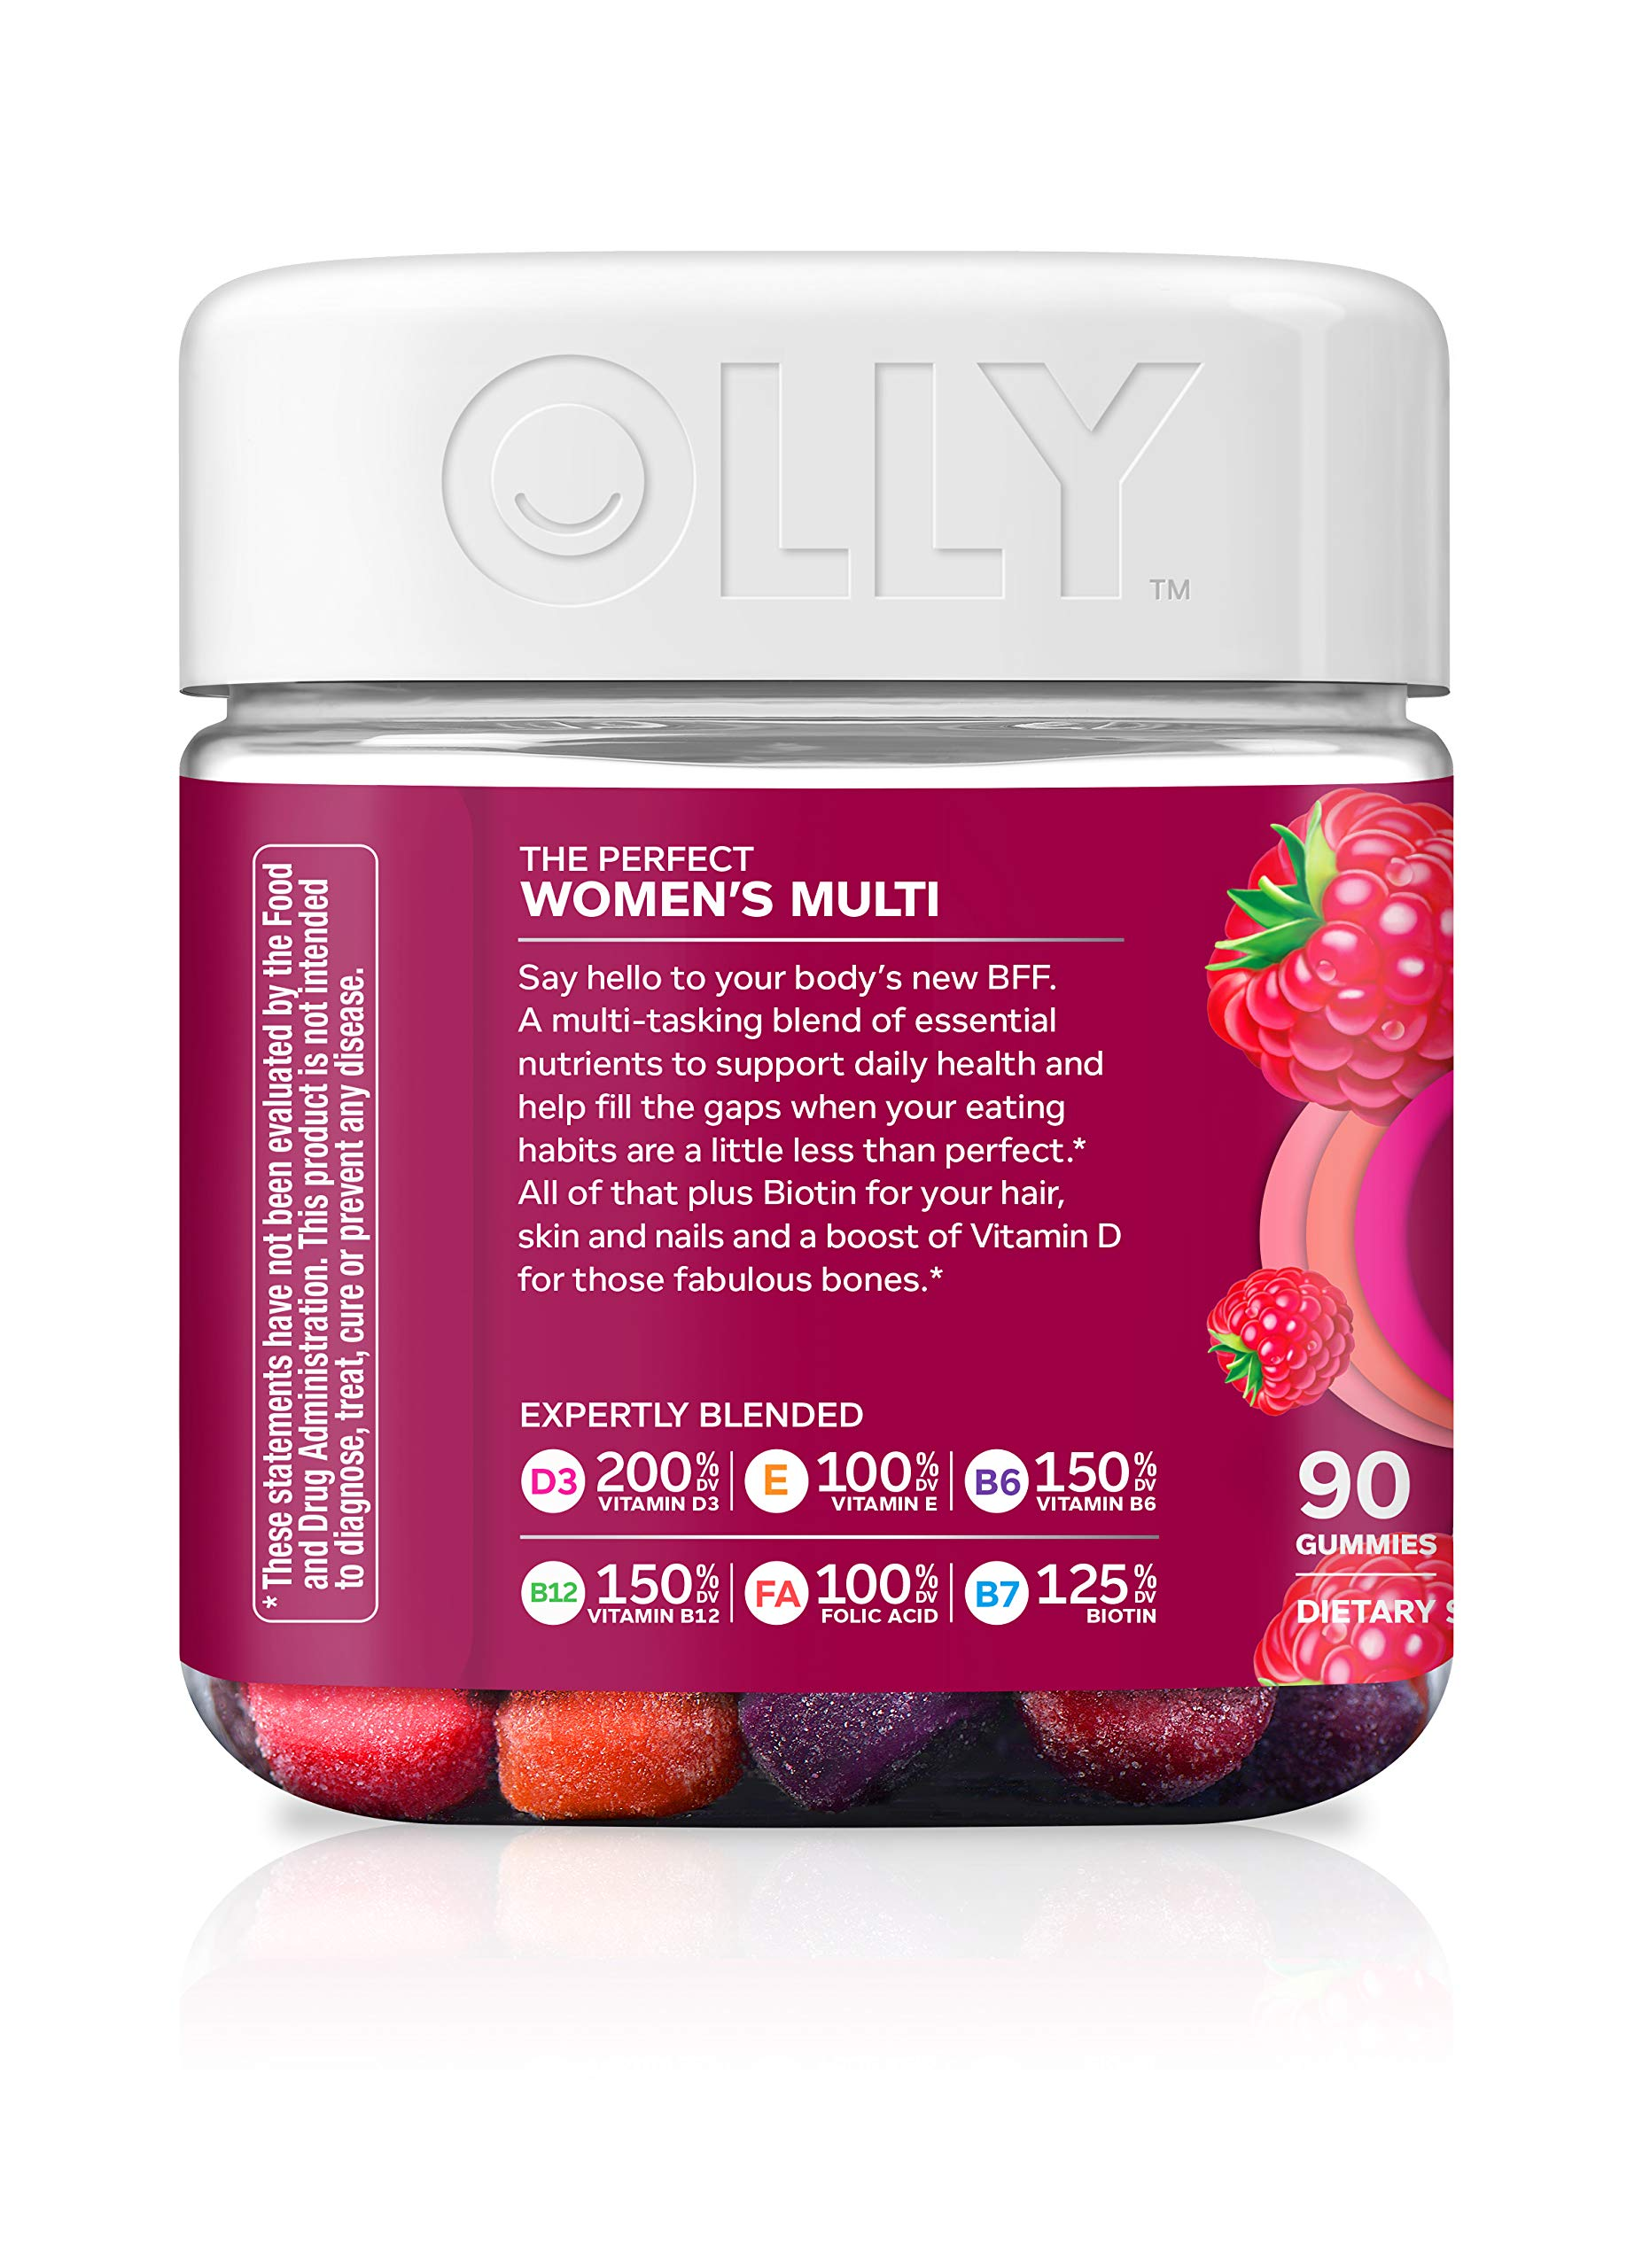 OLLY Perfect Women's Multivitamin Gummy Supplement with Biotin & Folic Acid, Blissful Berry